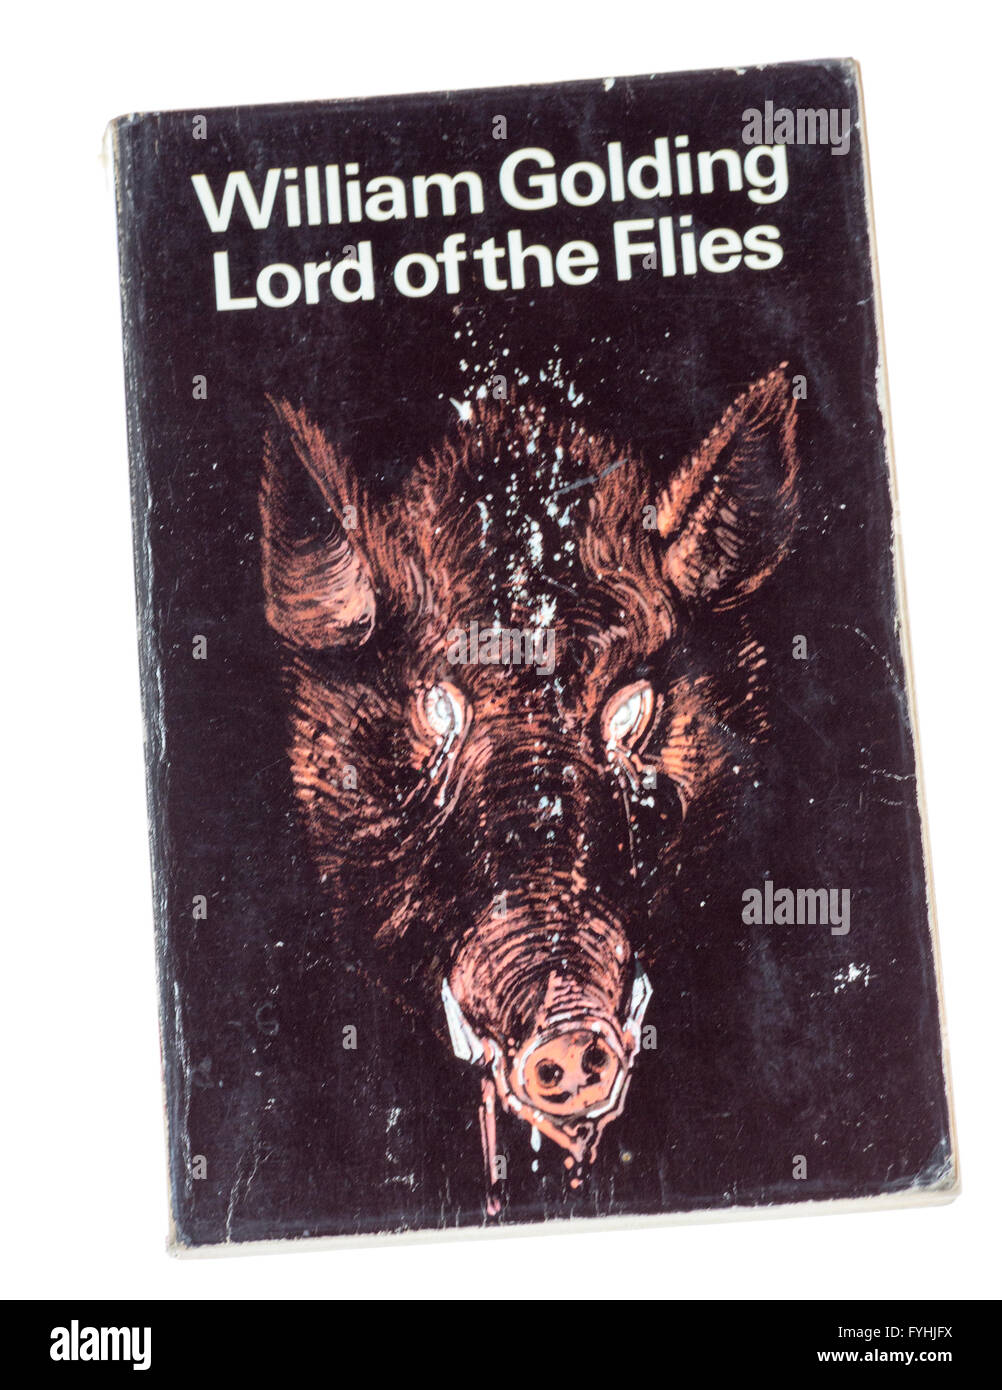 William Golding Lord Of The Flies Paperback Book Cover Stock Photo